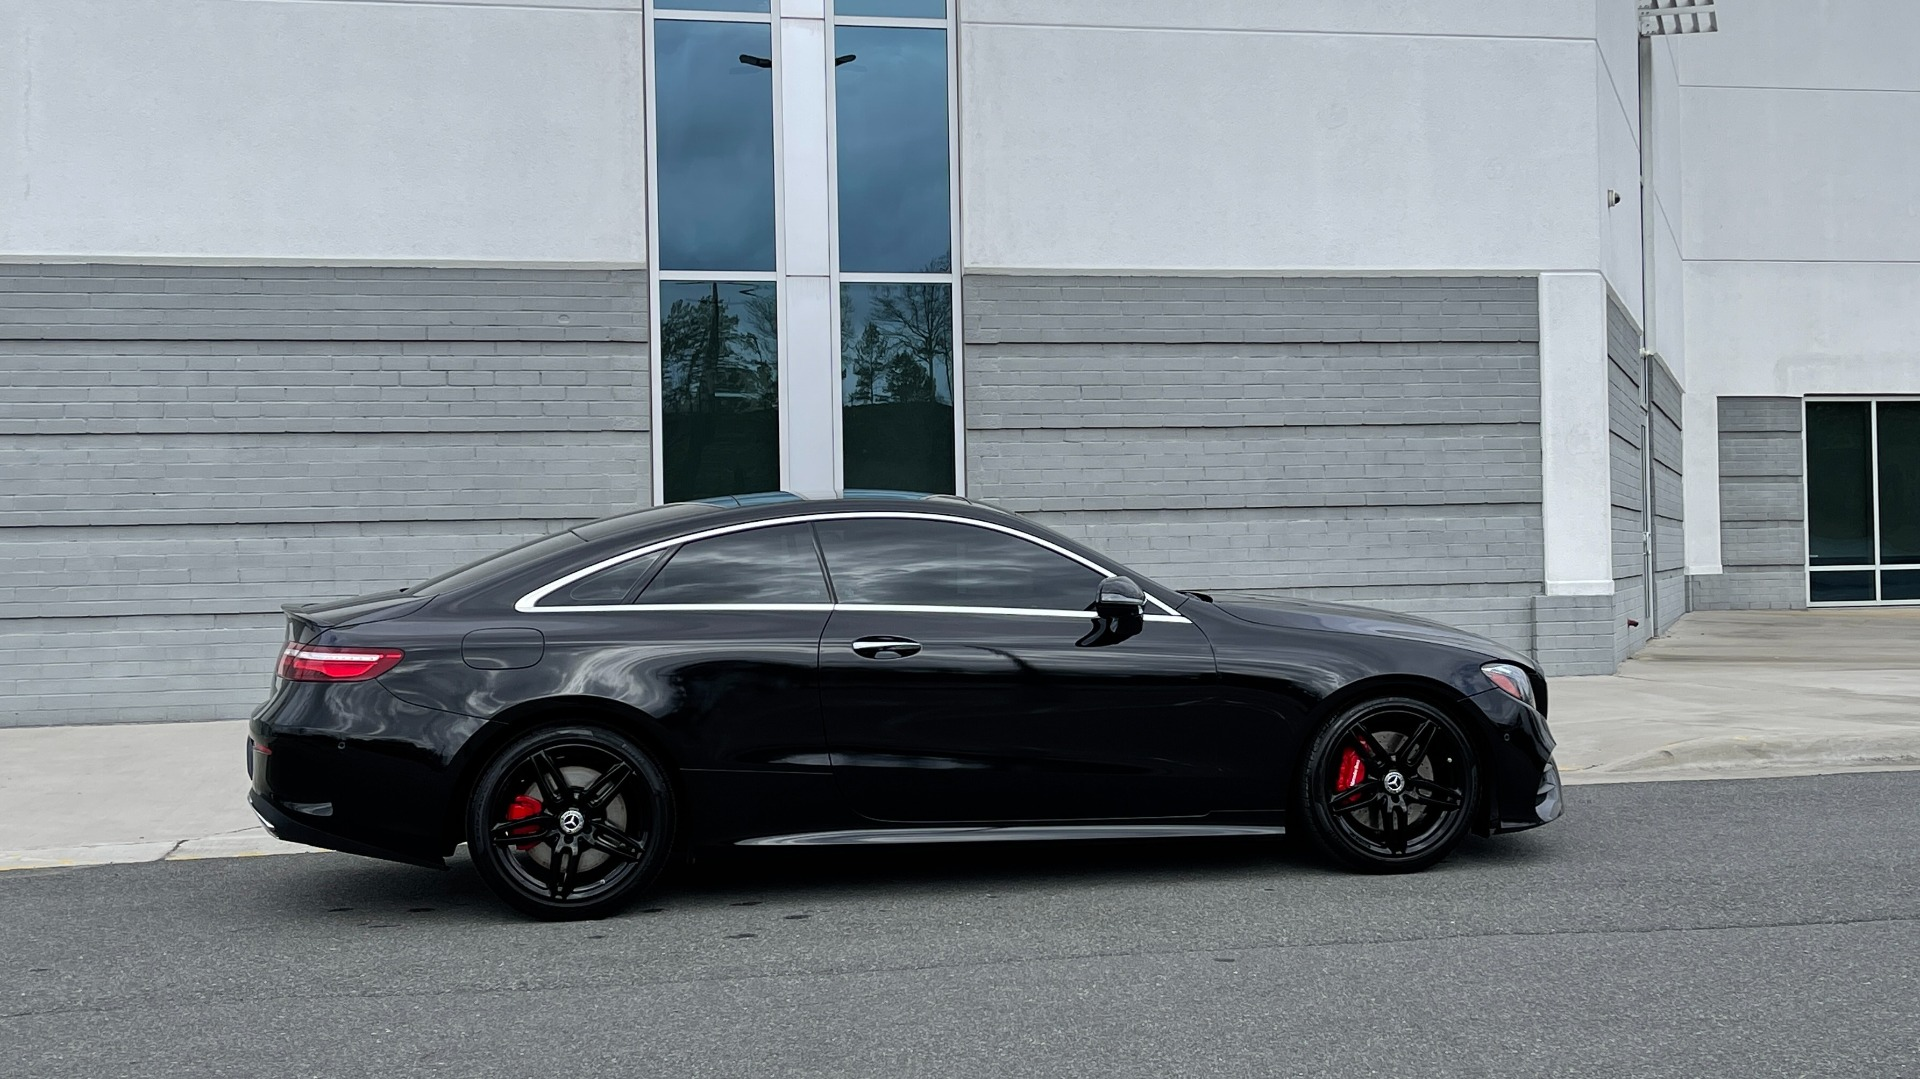 Used 2019 Mercedes-Benz E-CLASS E 450 PREMIUM / AMG LINE / PARK ASST / BSA / BURMESTER for sale $49,995 at Formula Imports in Charlotte NC 28227 7